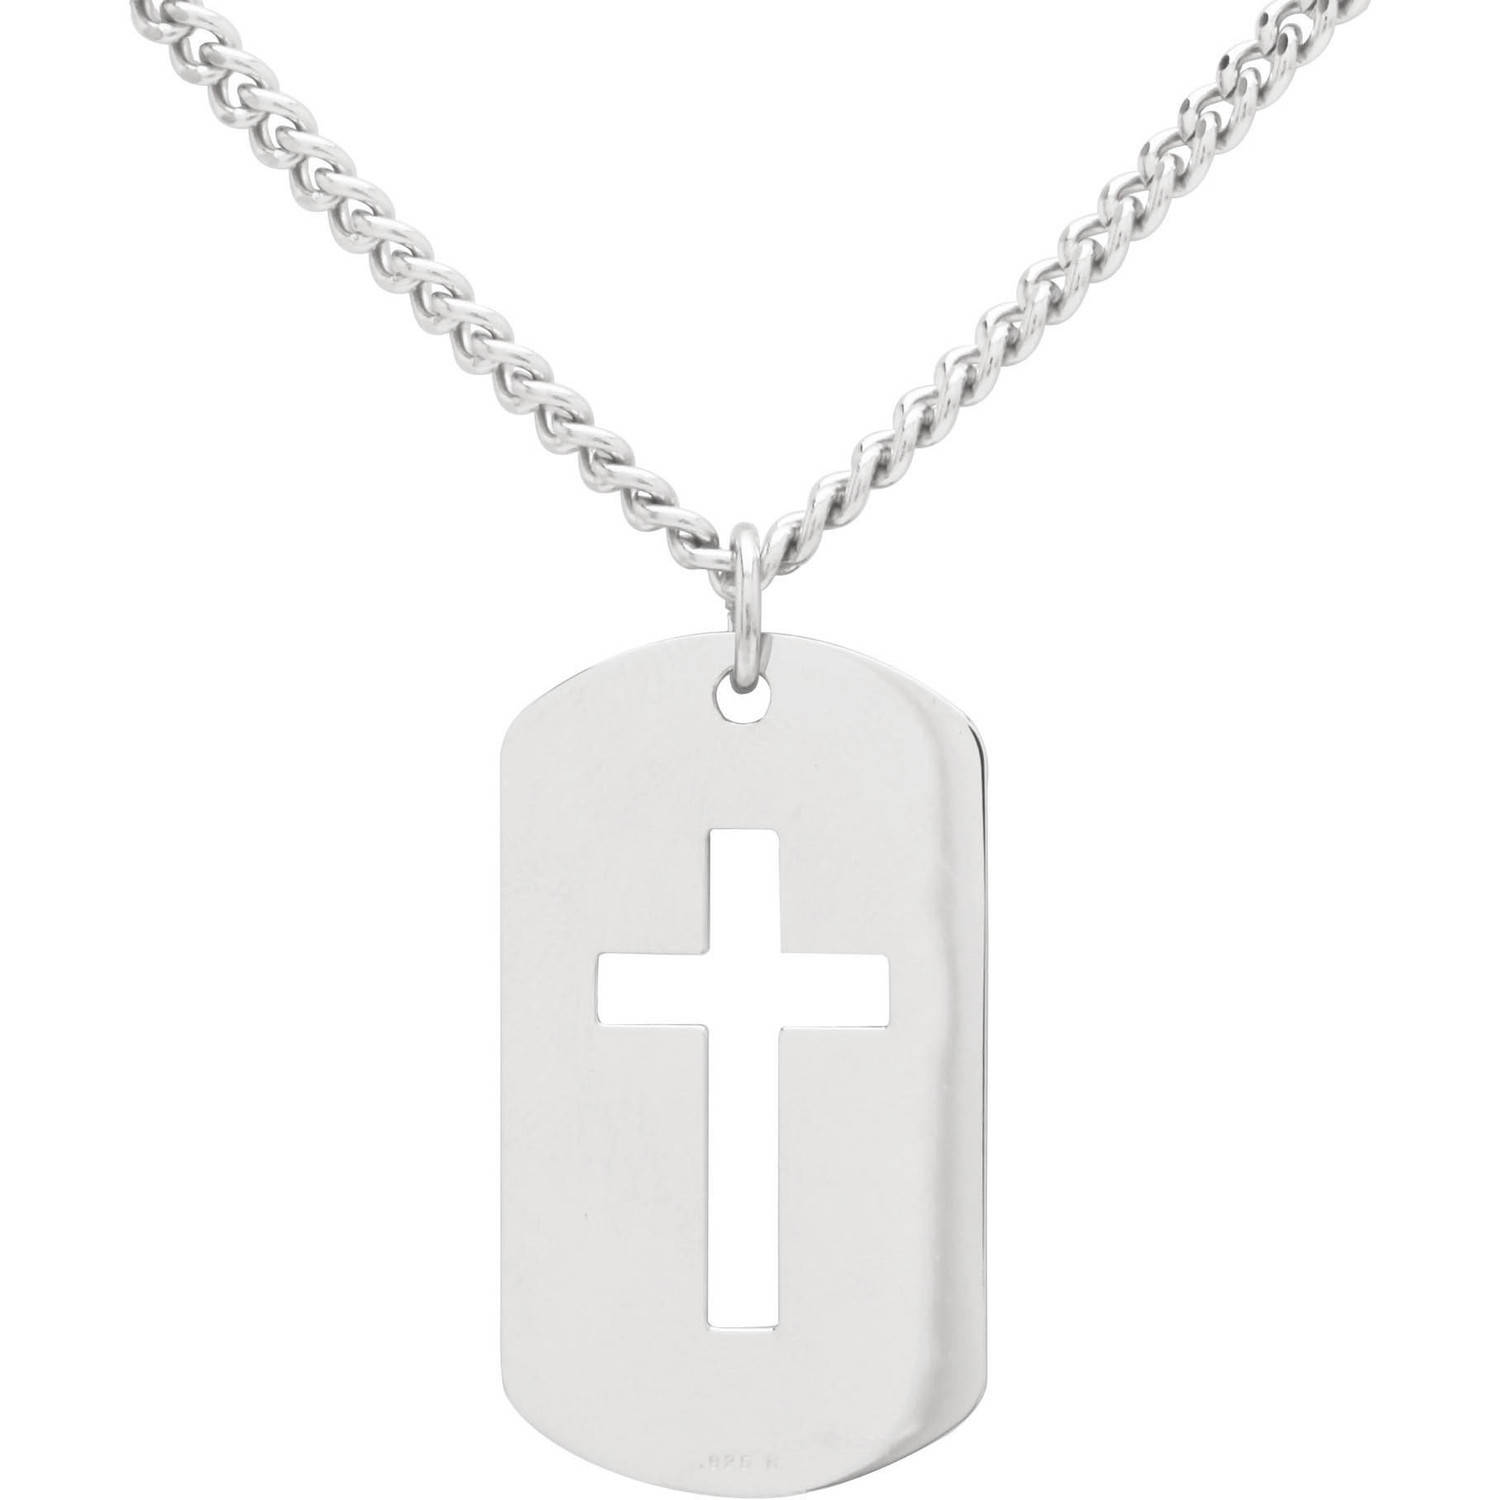 "Sterling Silver Dog Tag with Open Cross Pendant, 24"" Stainless Steel Chain"